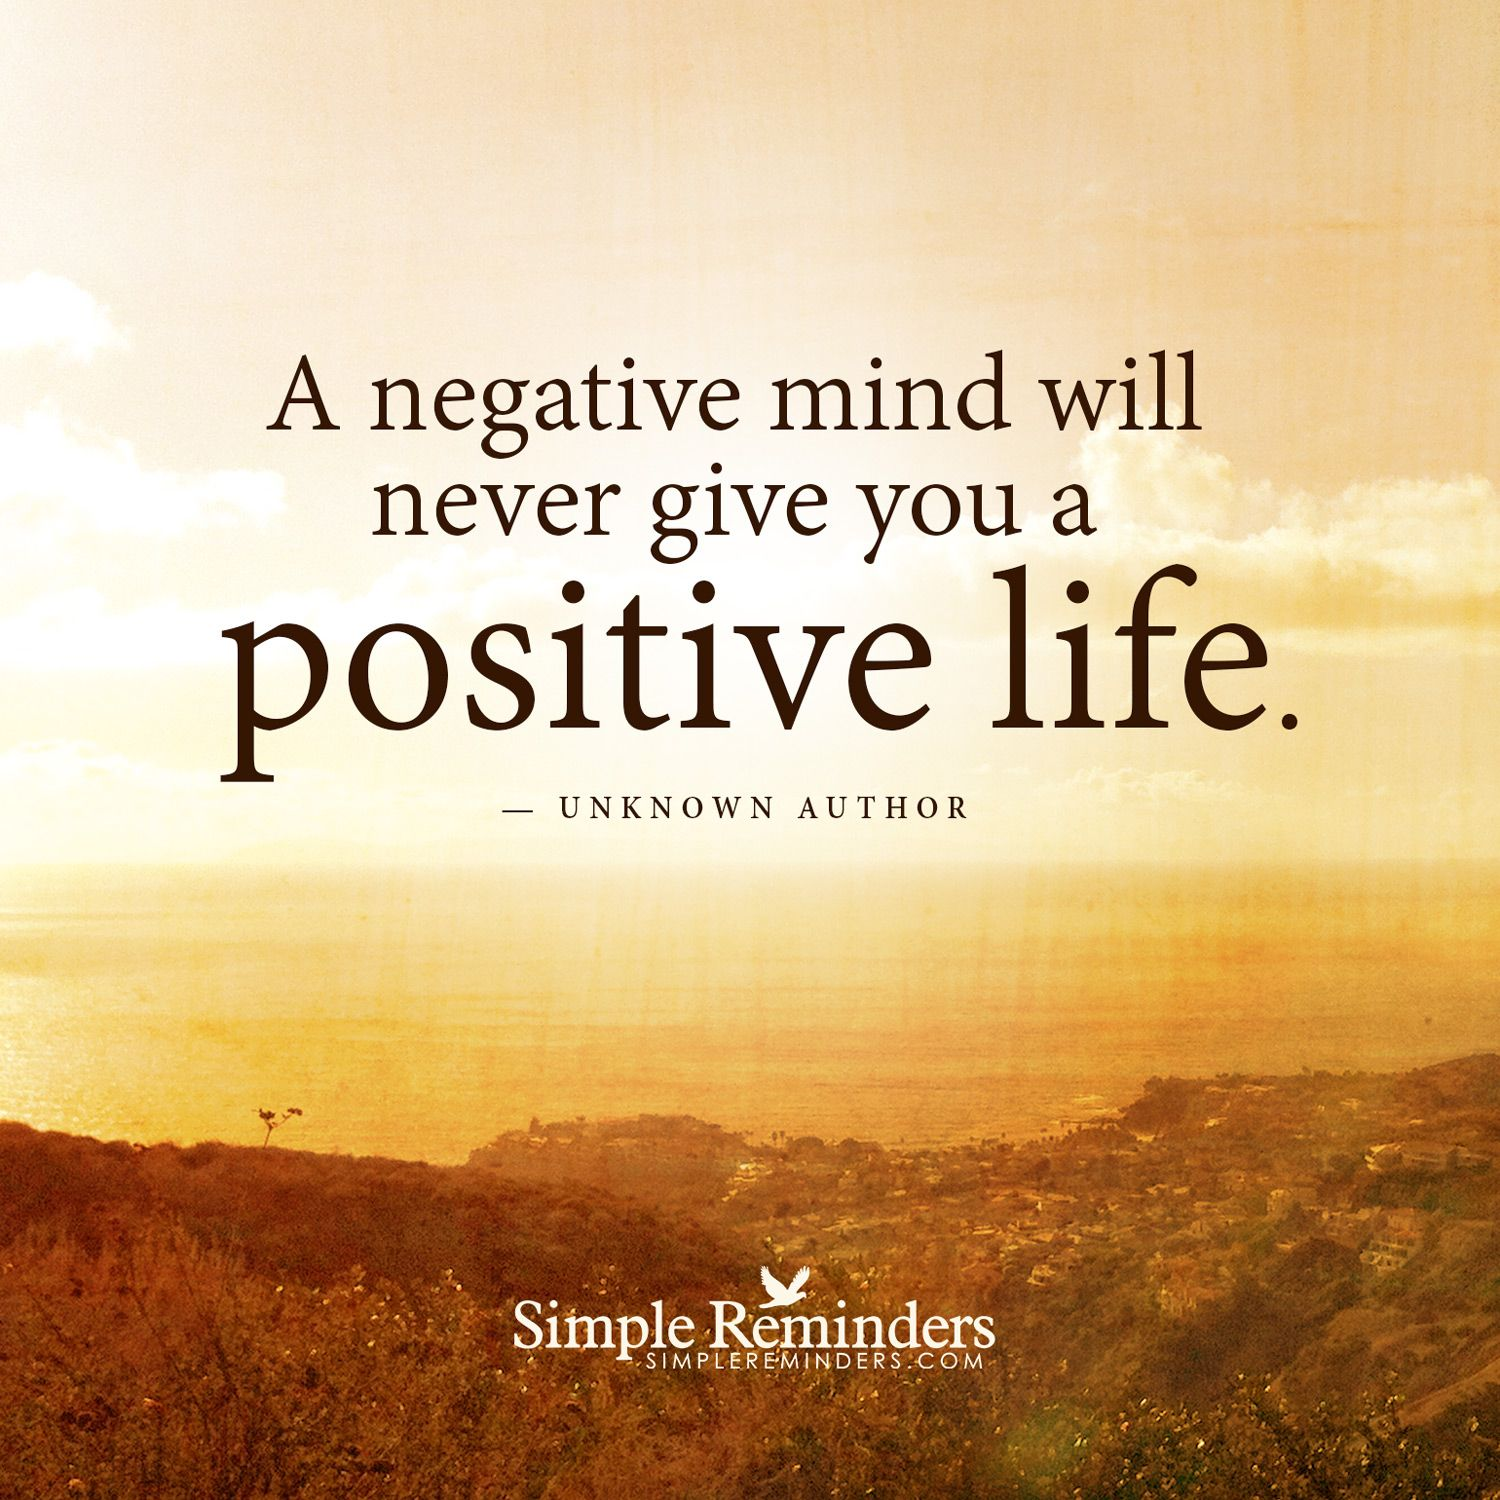 Wisdom Quotes Inspirational: A Negative Mind Will Never Give You A Positive Life